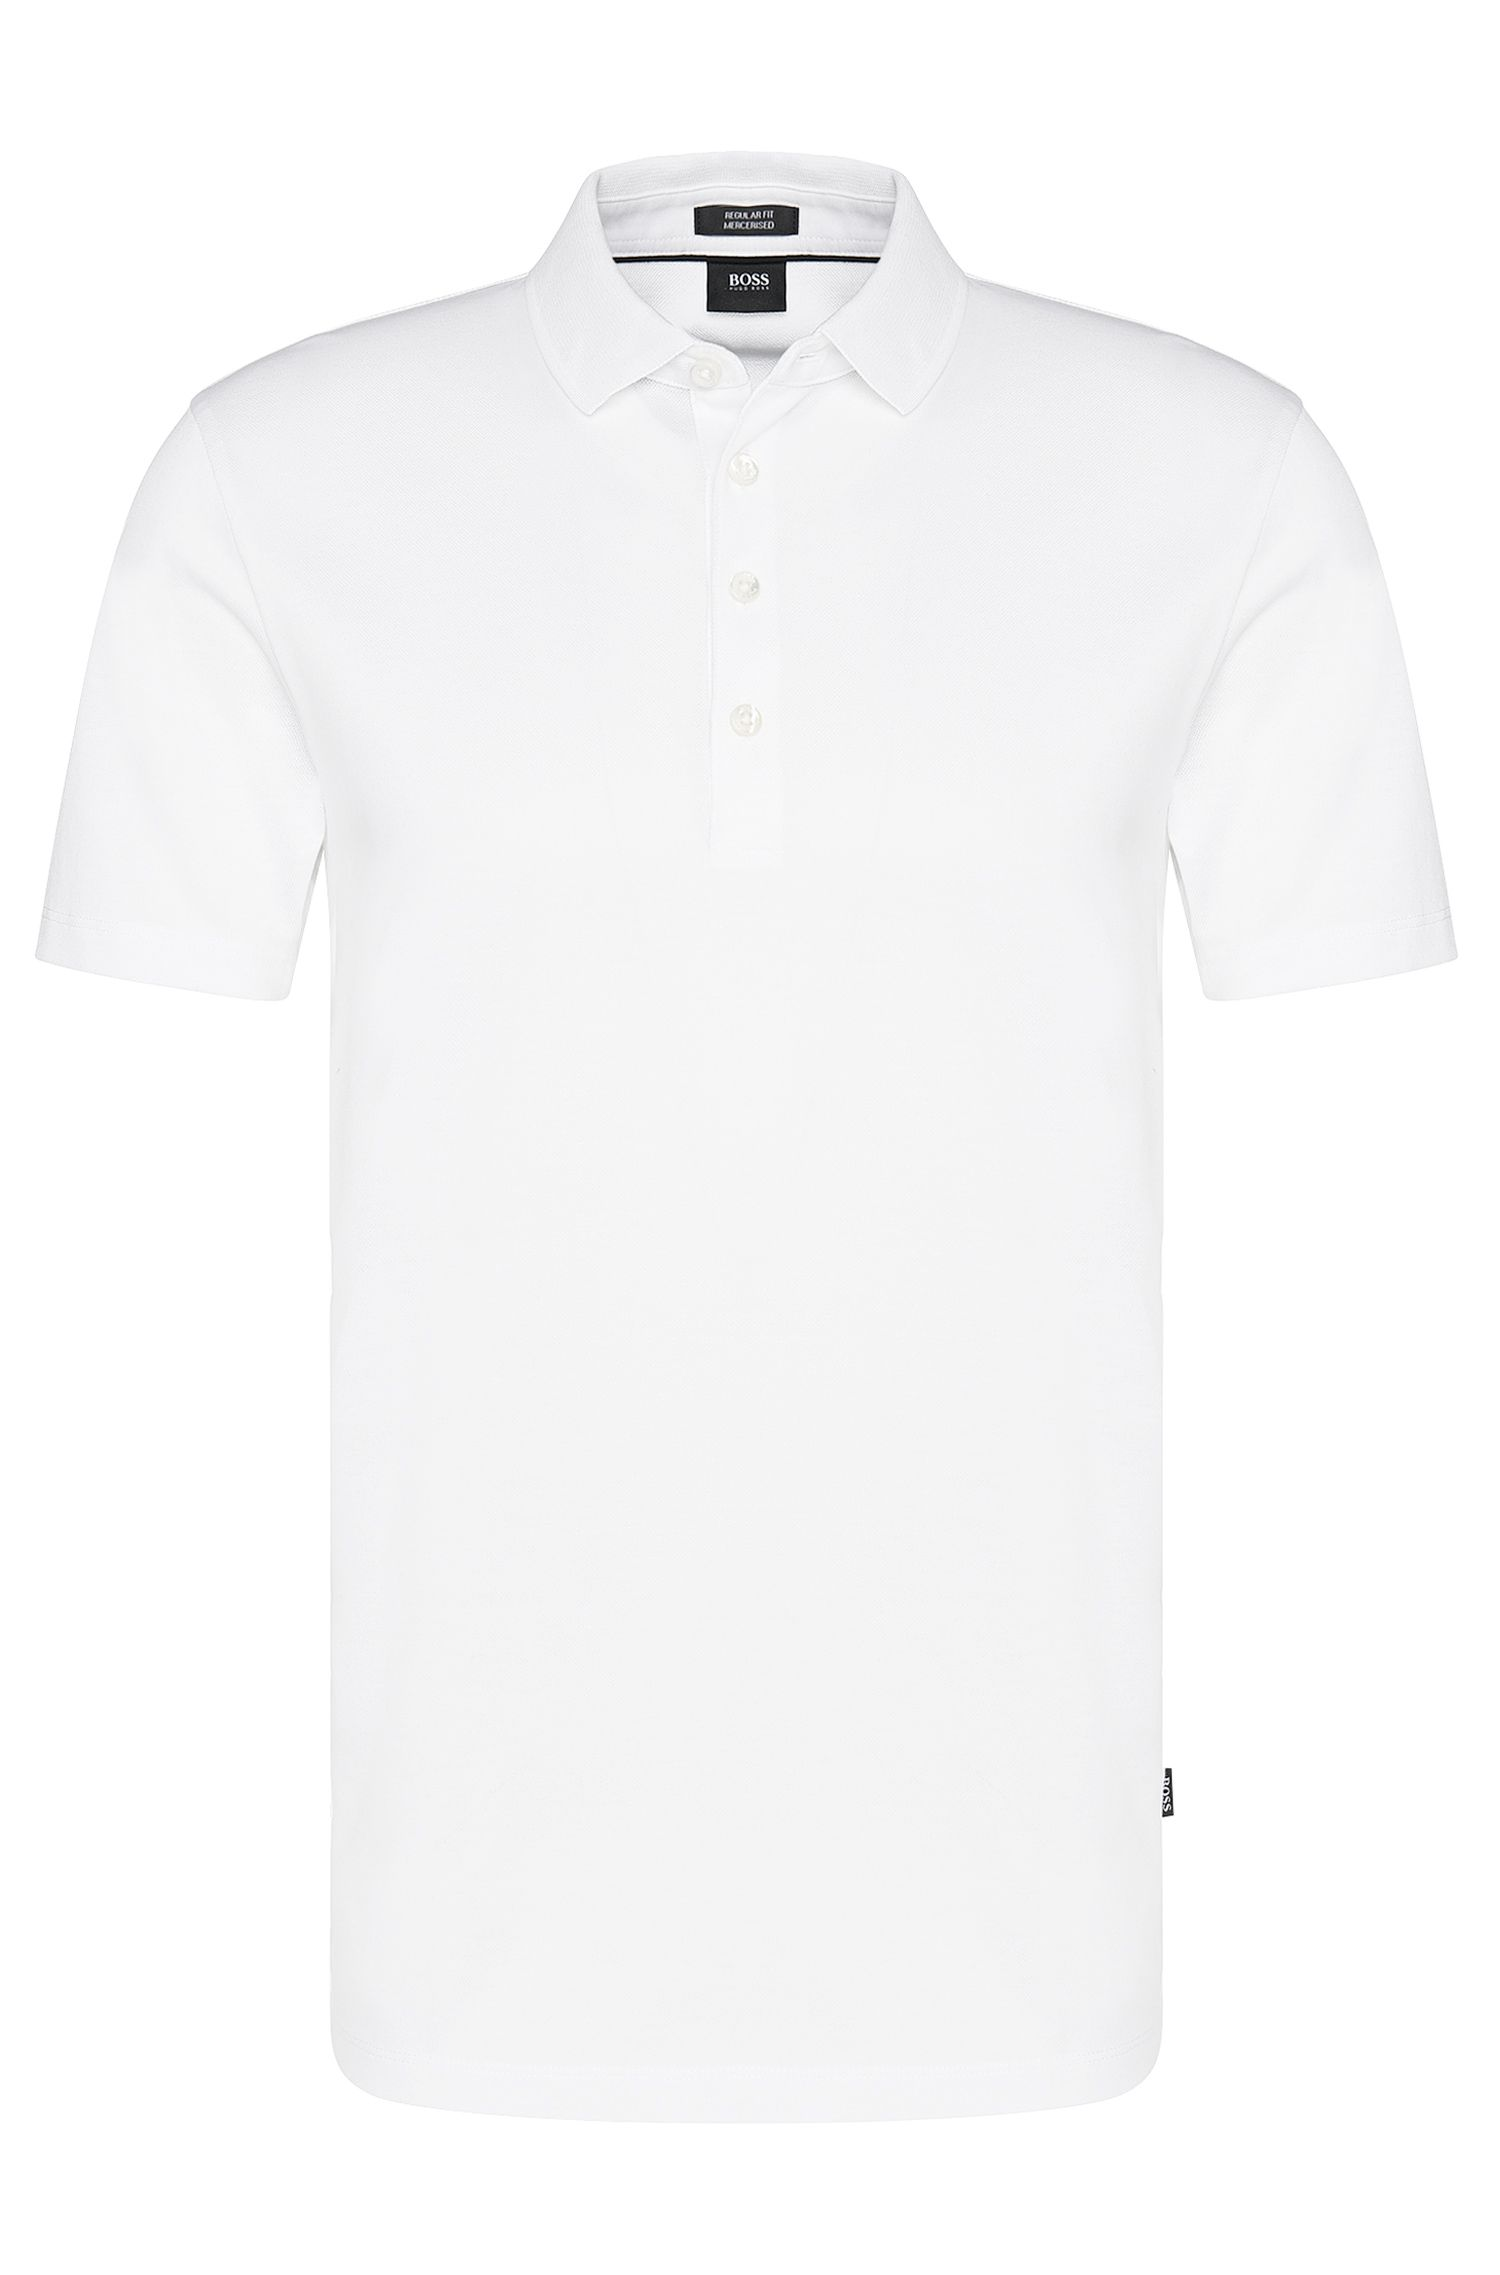 'Pack' | Regular Fit, Mercerized Cotton Polo Shirt